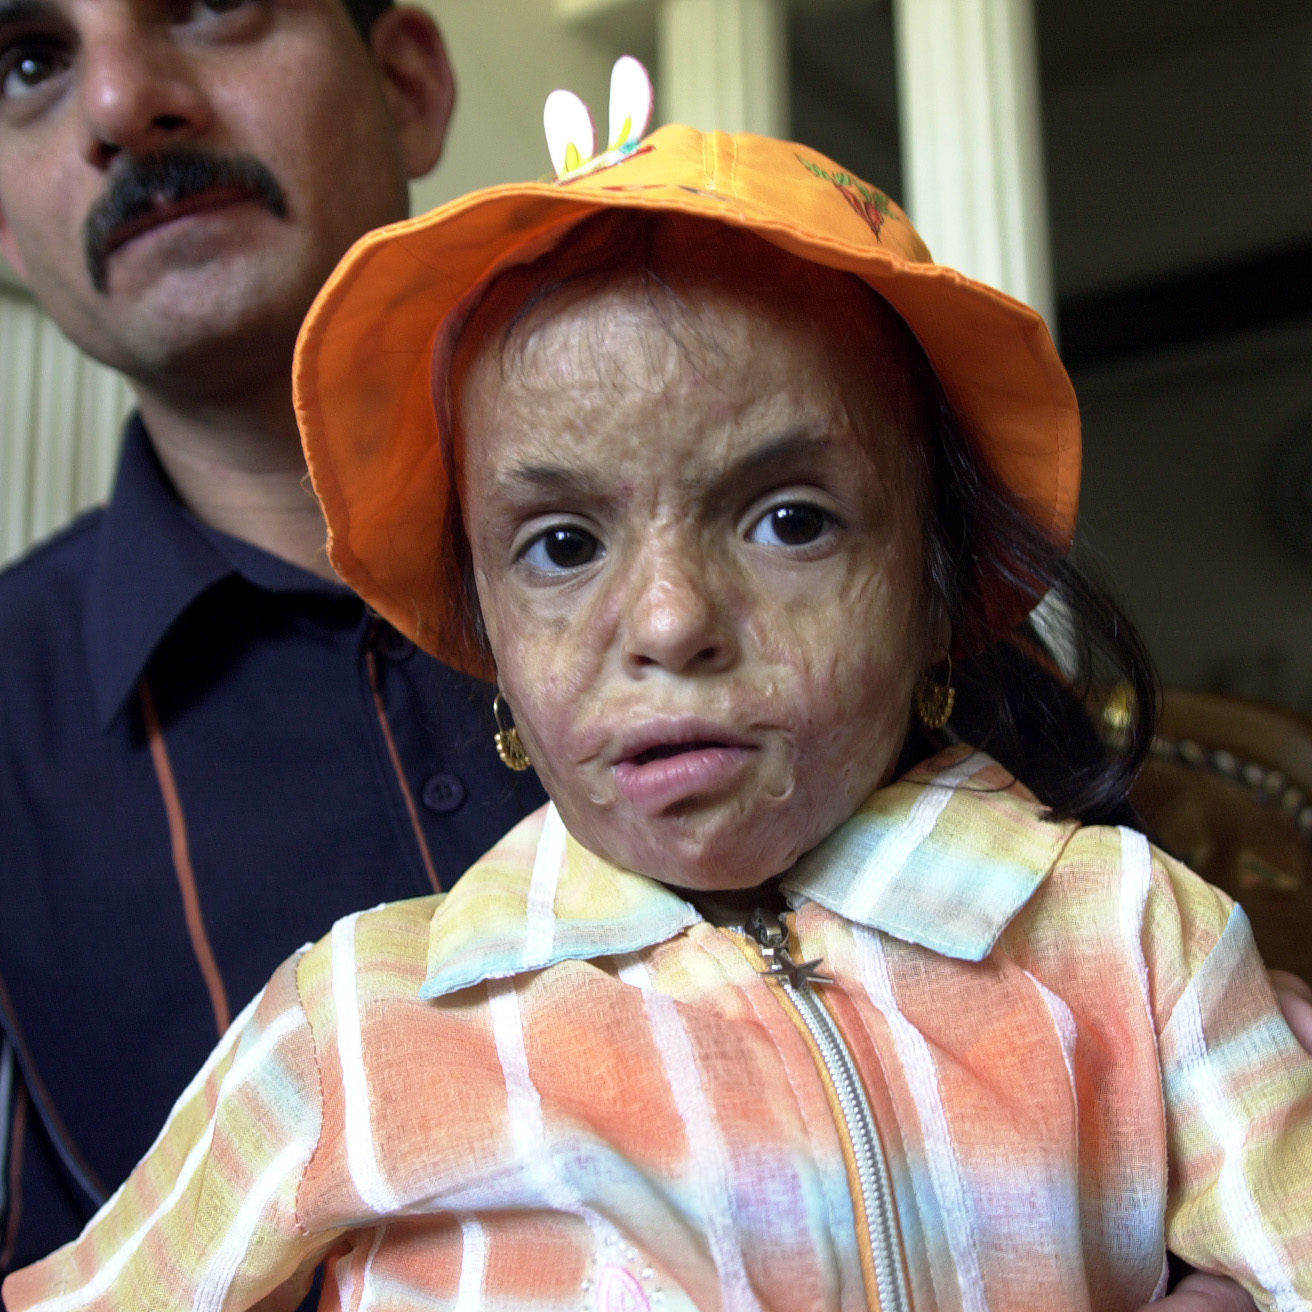 Teba Furat, 4, with her father Fahdel, 27, in Baghdad, Iraq, on June 5, 2006.  Teba suffered second degree burns on her face, scalp, and both hands during a roadside bombing in the provincial capital of Baquba on Sept. 2, 2003.  Fahdel worries his daughter's deformities will trouble her when she begins school next year, and may burden her throughout her life if not corrected. Iraqi plastic surgeons, once limited to correcting congenital defects and performing elective cosmetic surgery, now say they are inundated with war-related injuries.   JAMES PALMER/FOR THE STAR-LEDGER